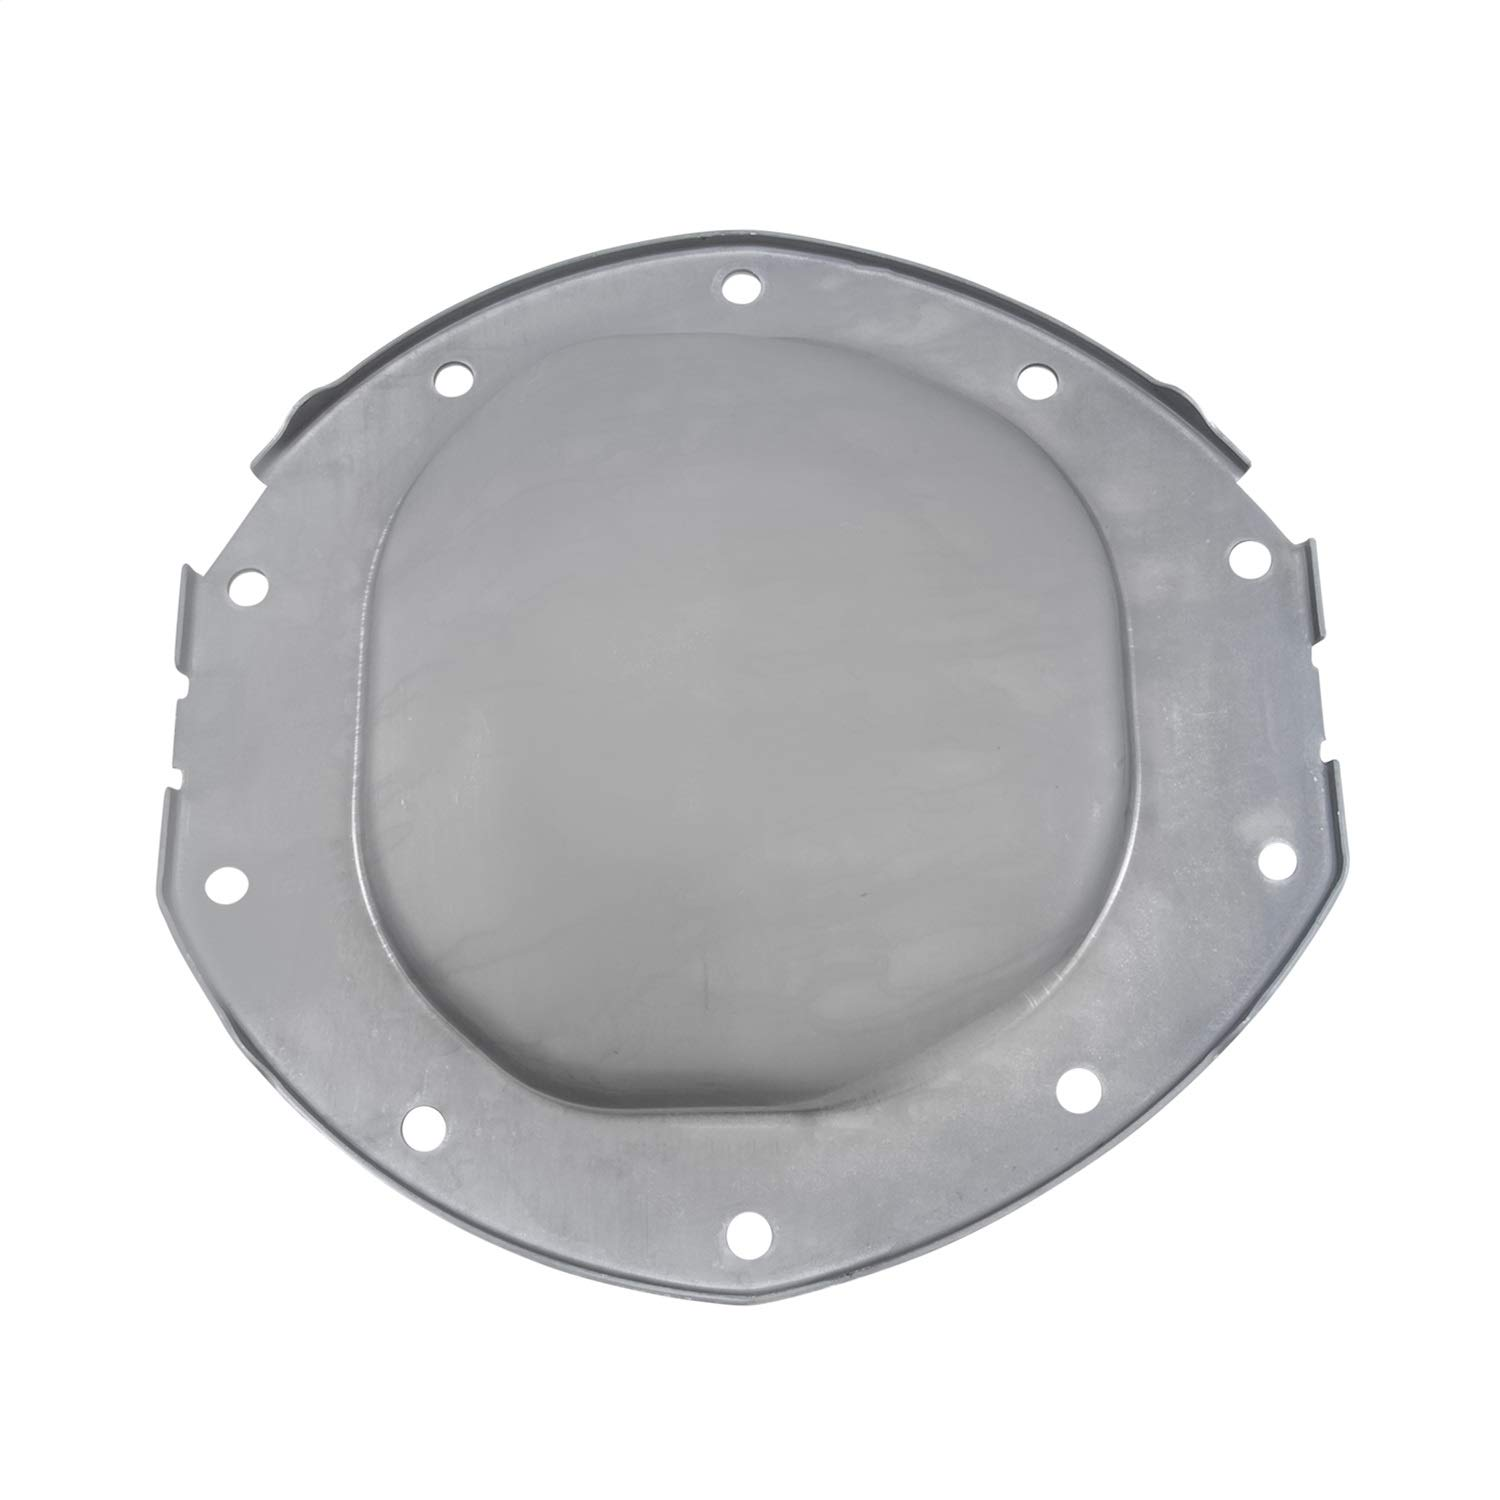 Yukon Gear YP C5-GM8.0 Differential Cover Steel Cover For GM 8 in. Differential Cover